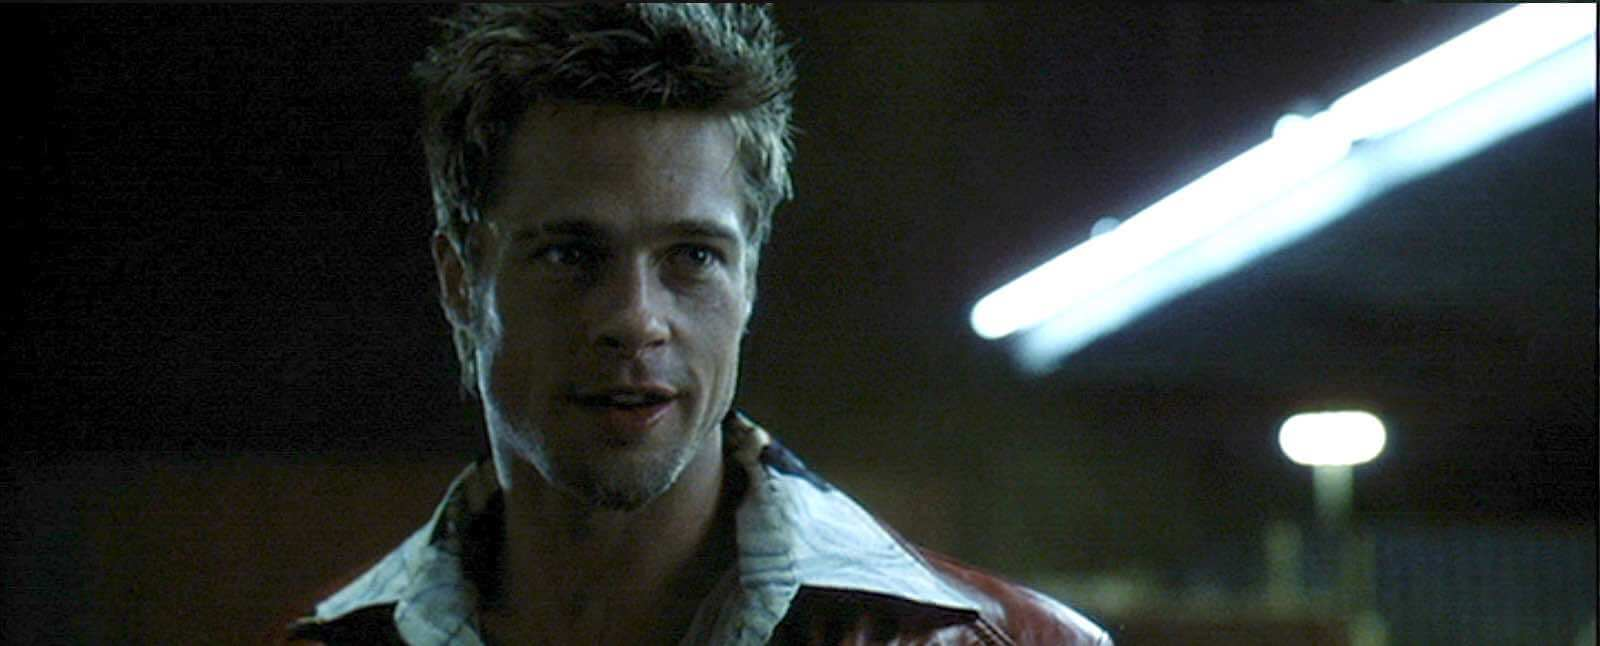 Film Lighting Techniques - 3-Point Lighting - Fight Club